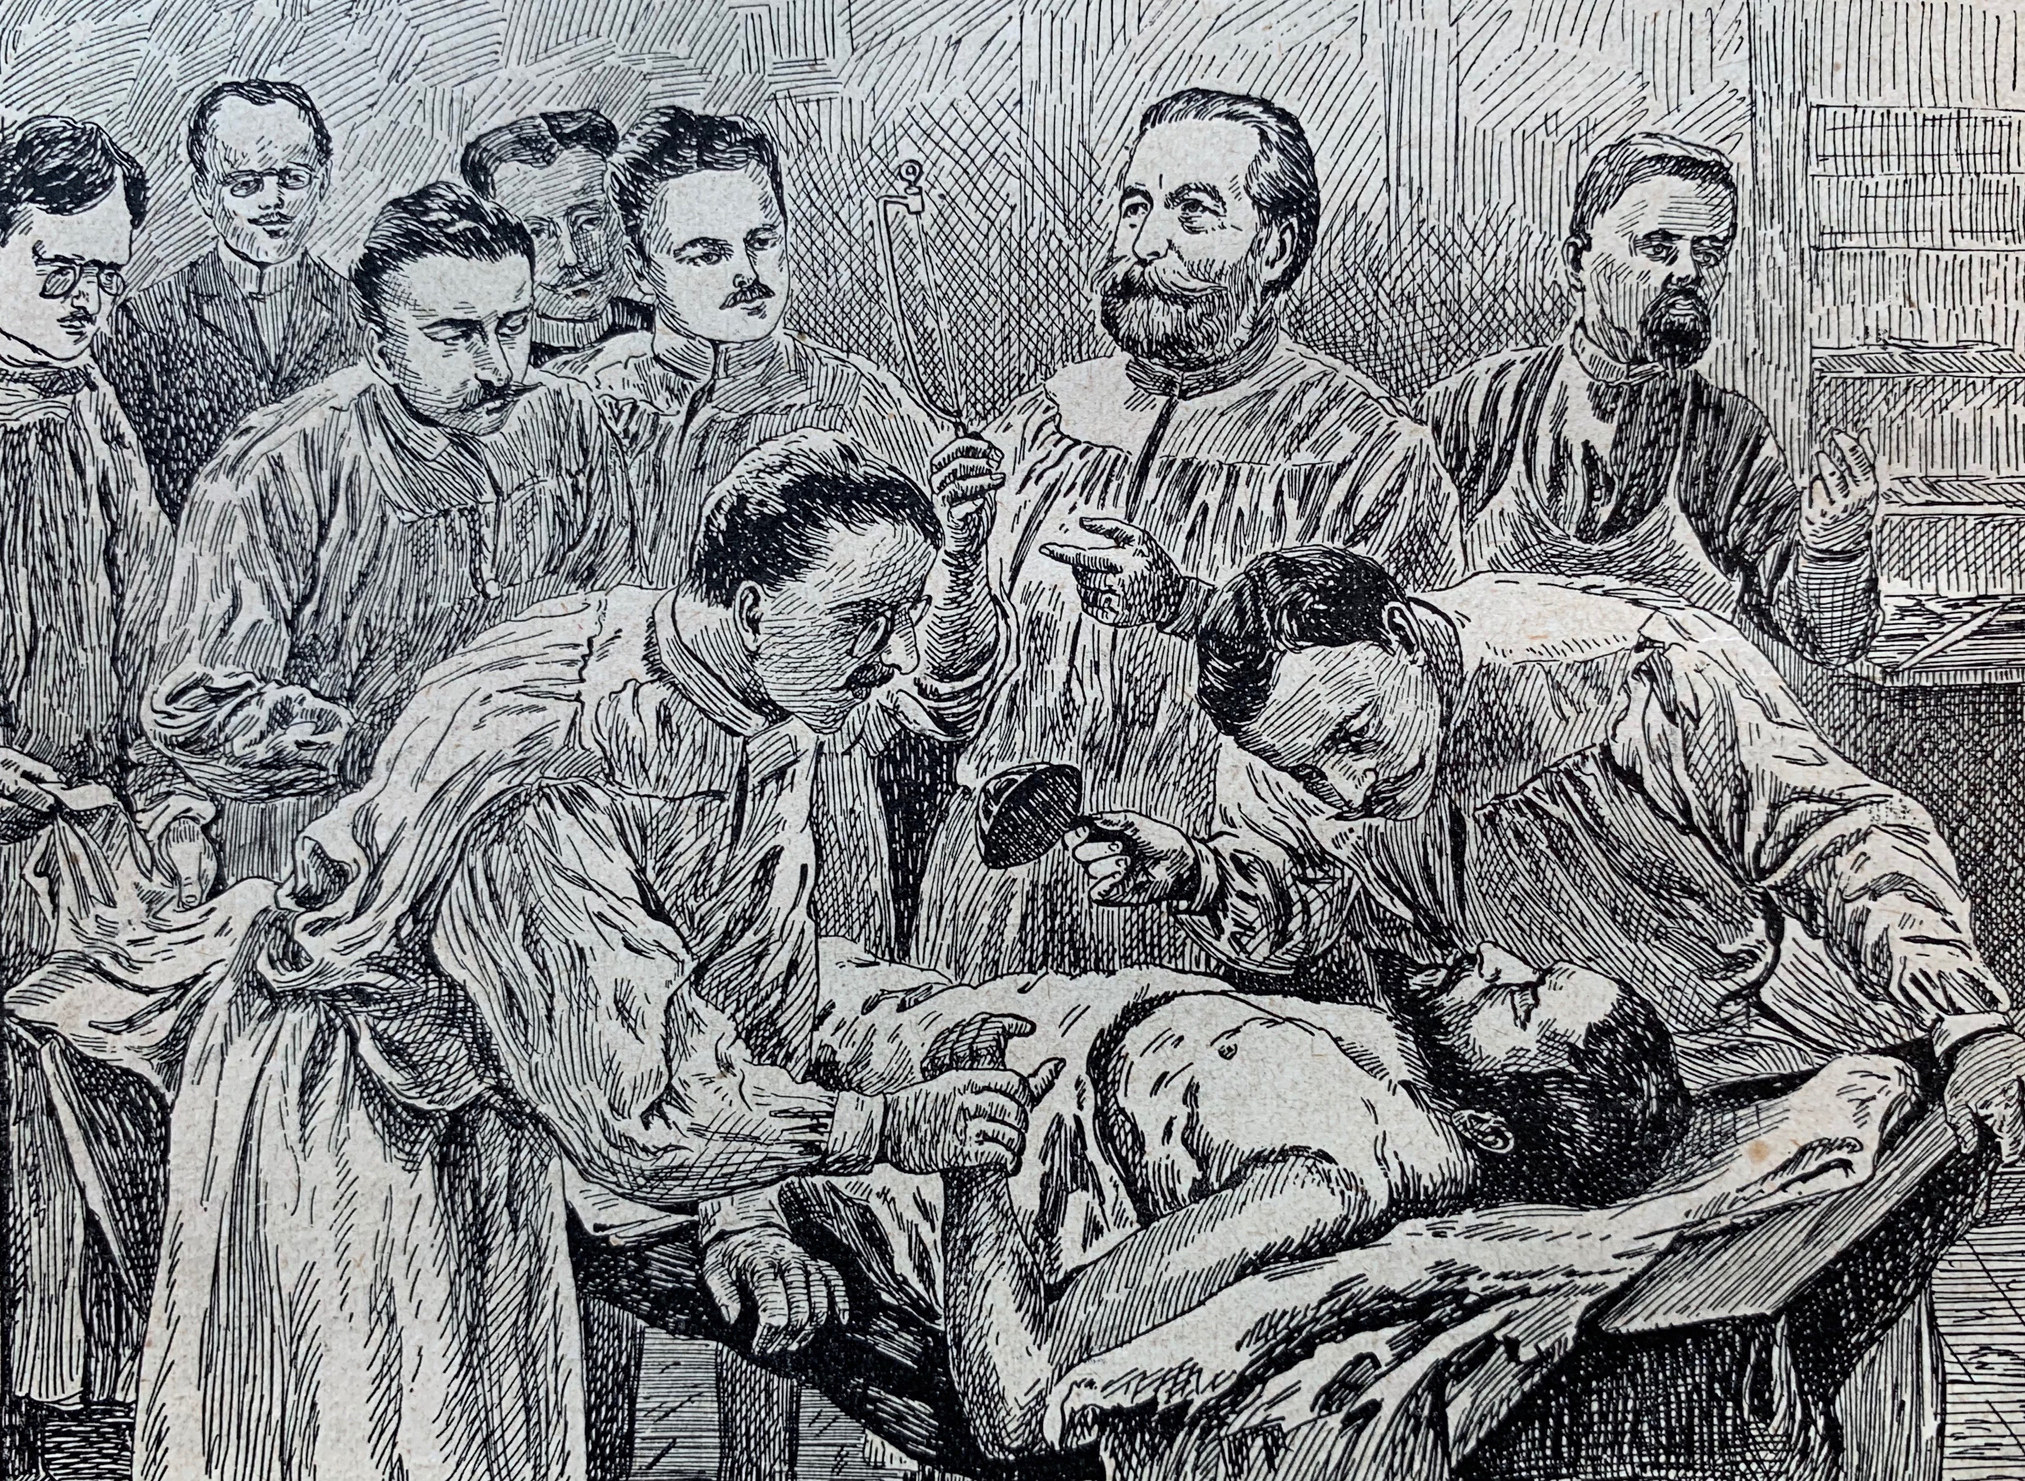 the illustration of a 19th-century surgery